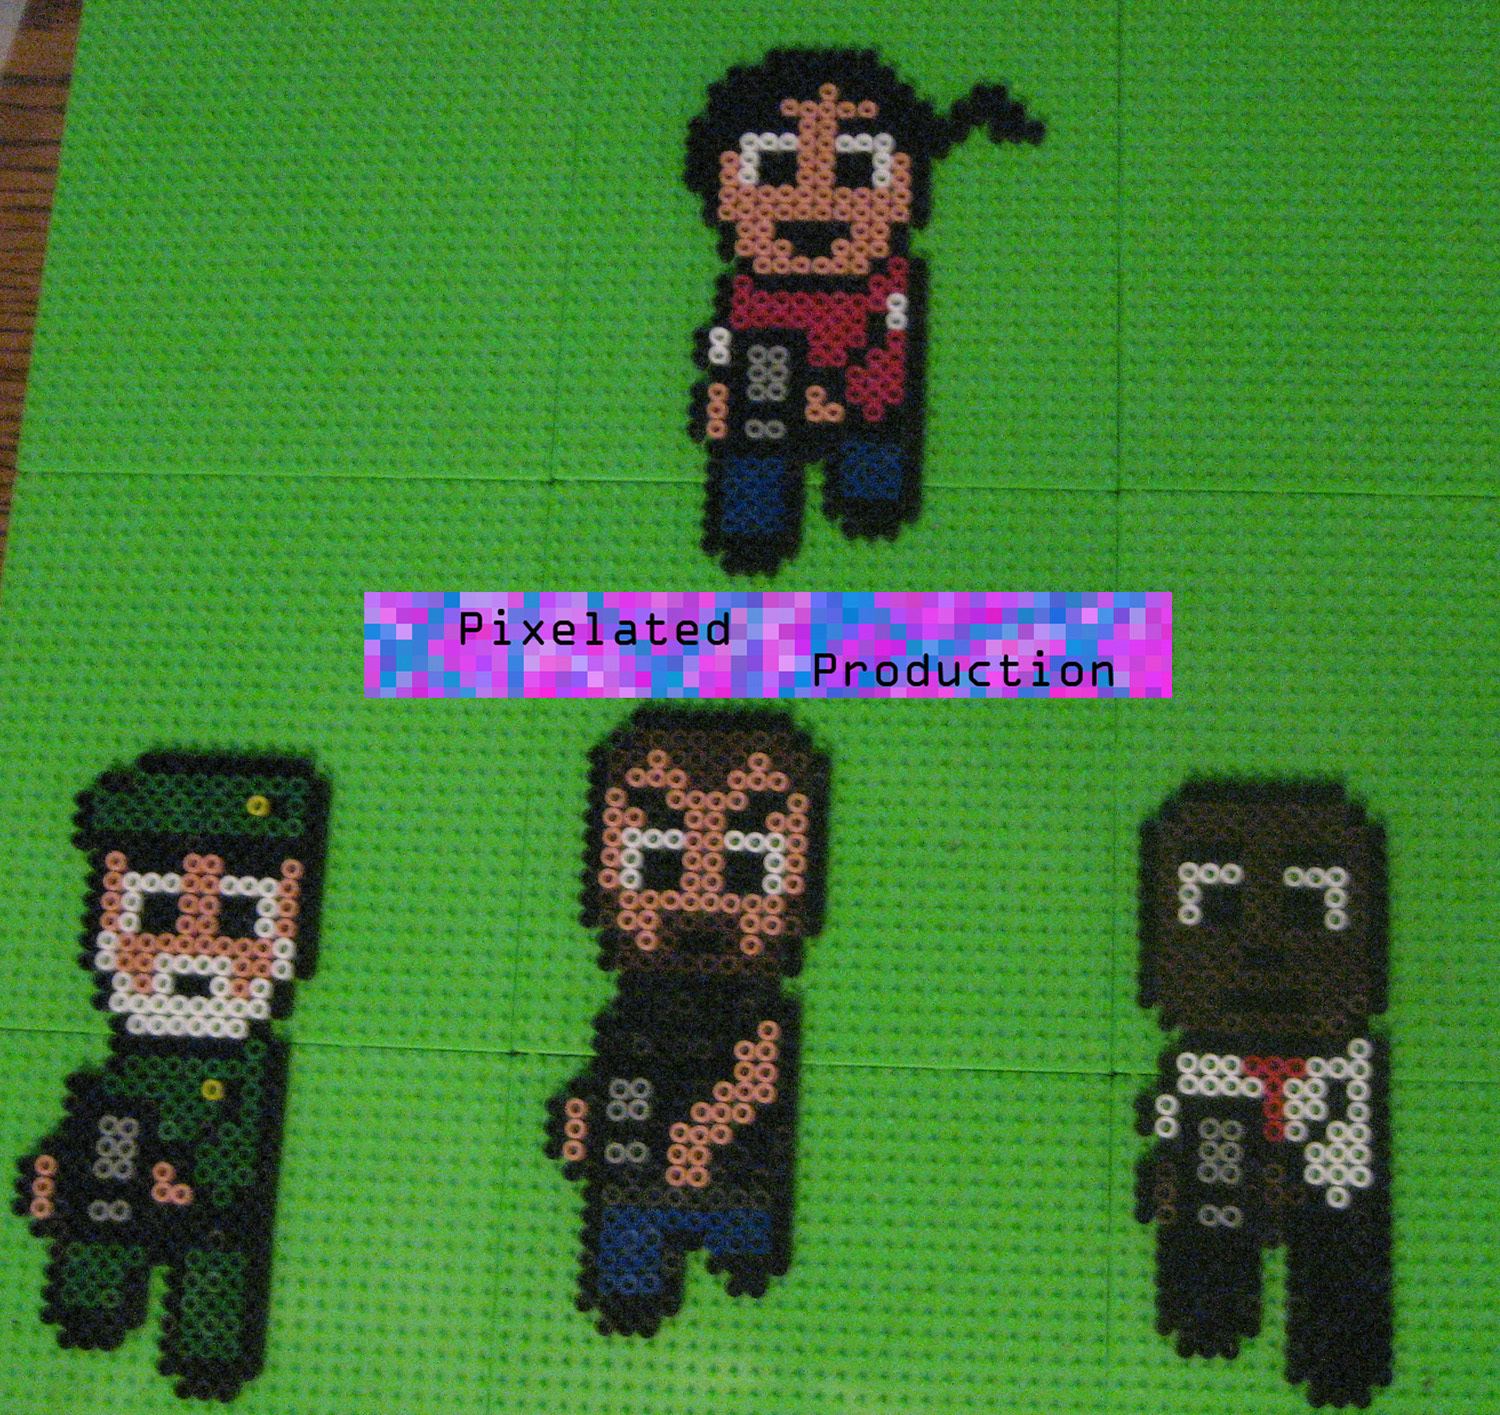 L4D Bead Art by Pixelated Production